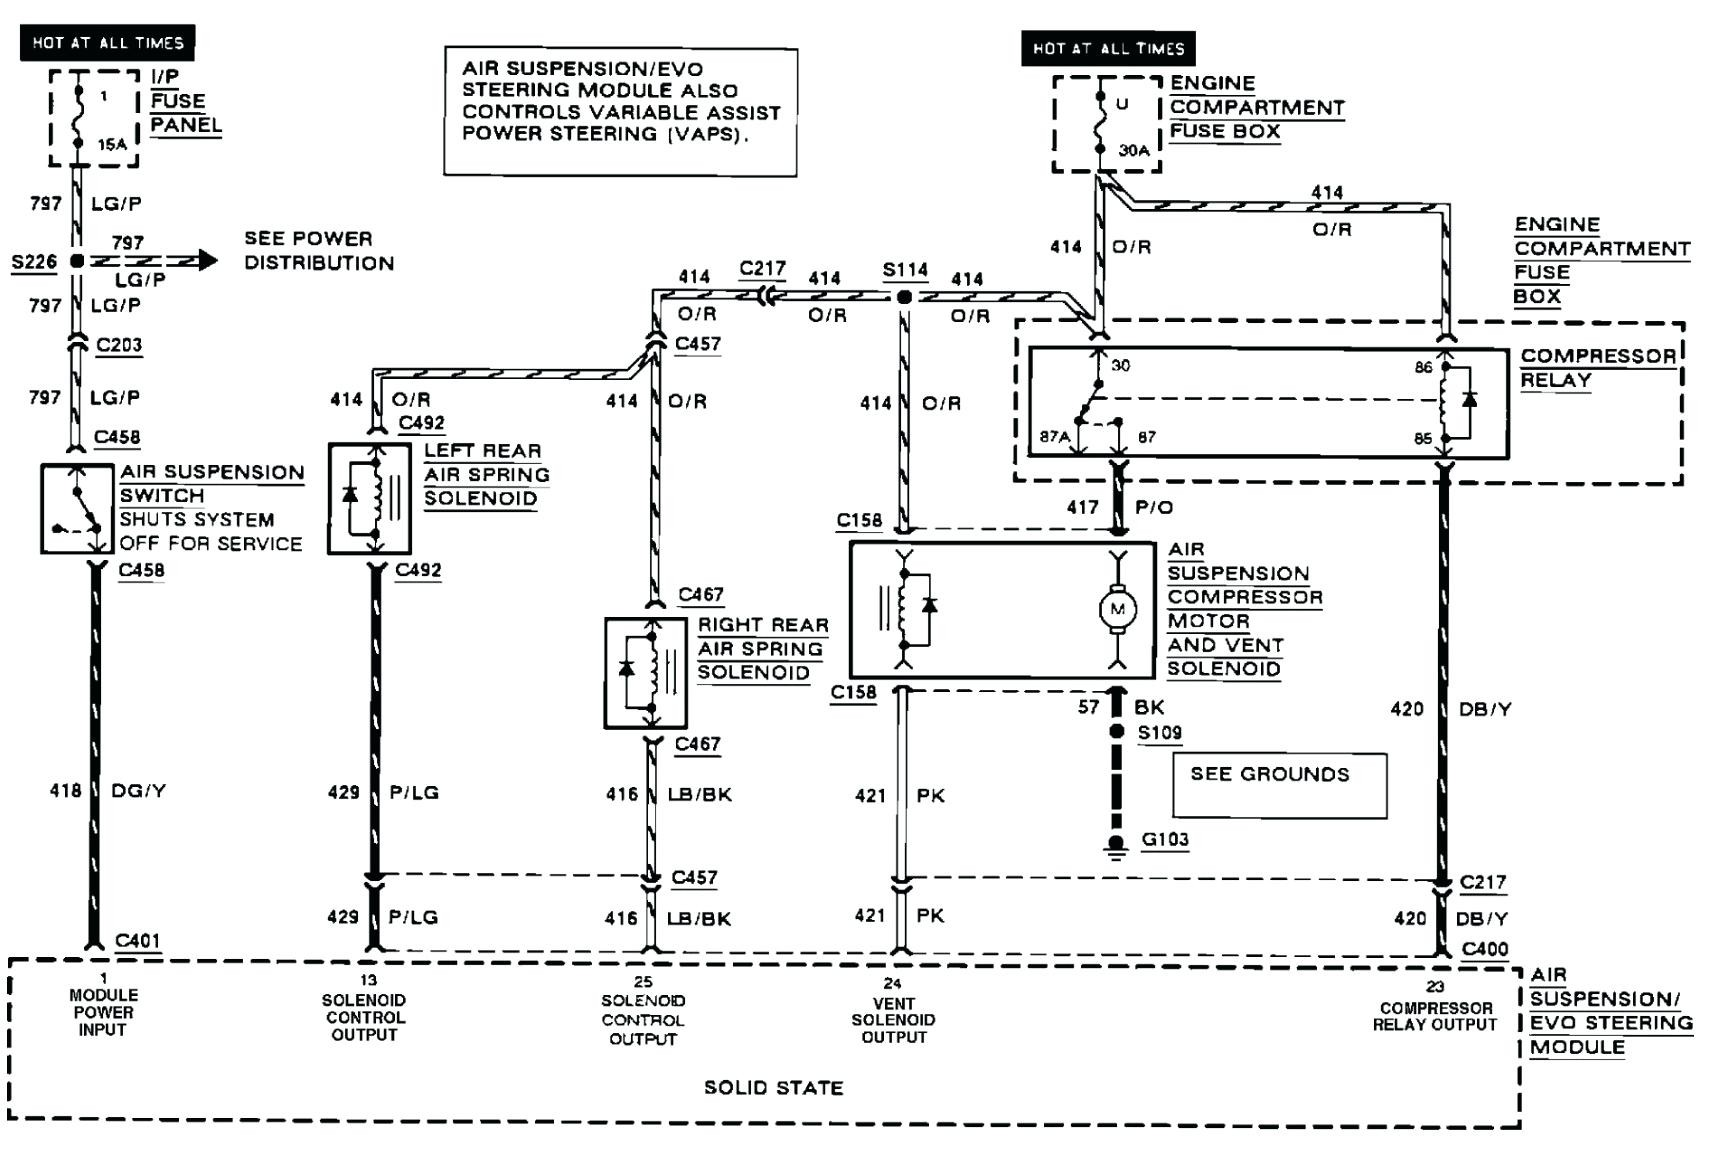 hight resolution of fuse box diagram for 1991 lincoln town car wiring diagram mega1998 town car fuse box wiring